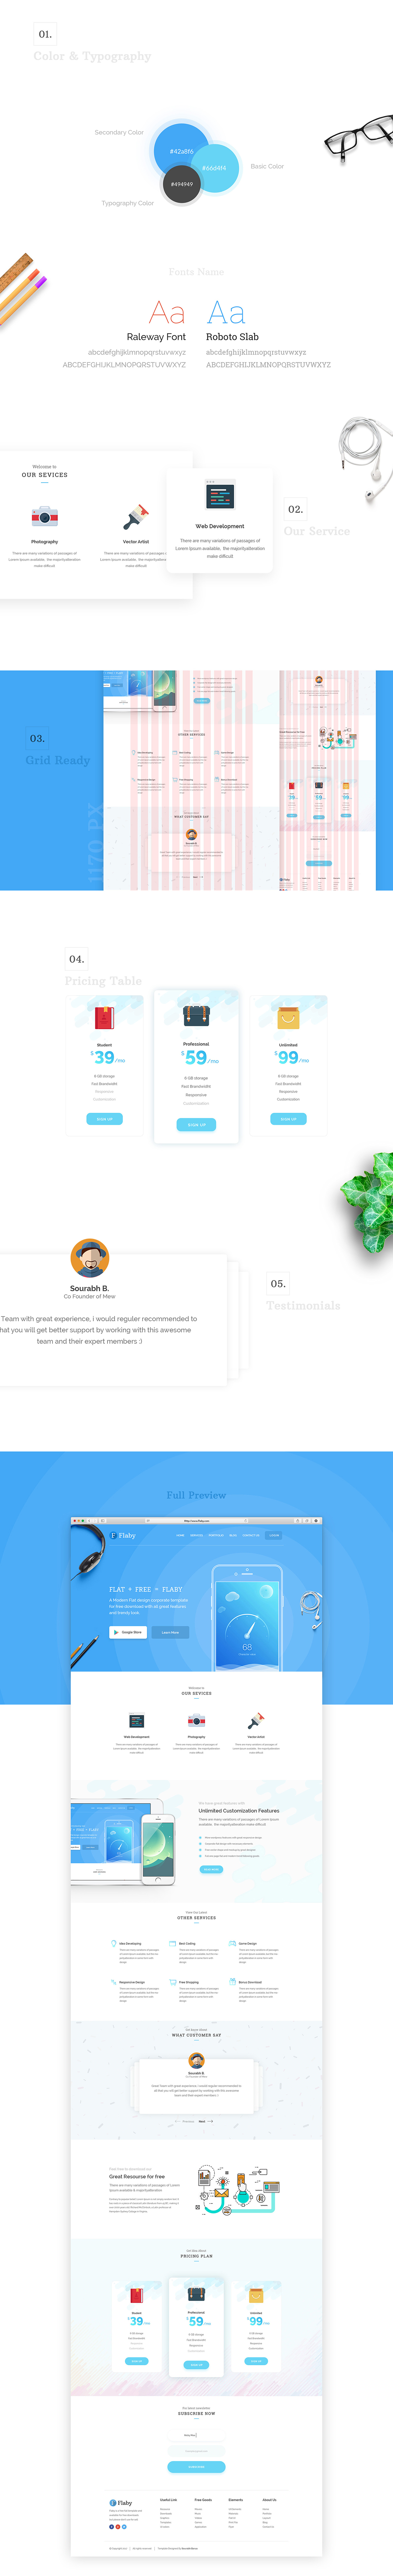 flaby-a-free-psd-flat-landing-page-full